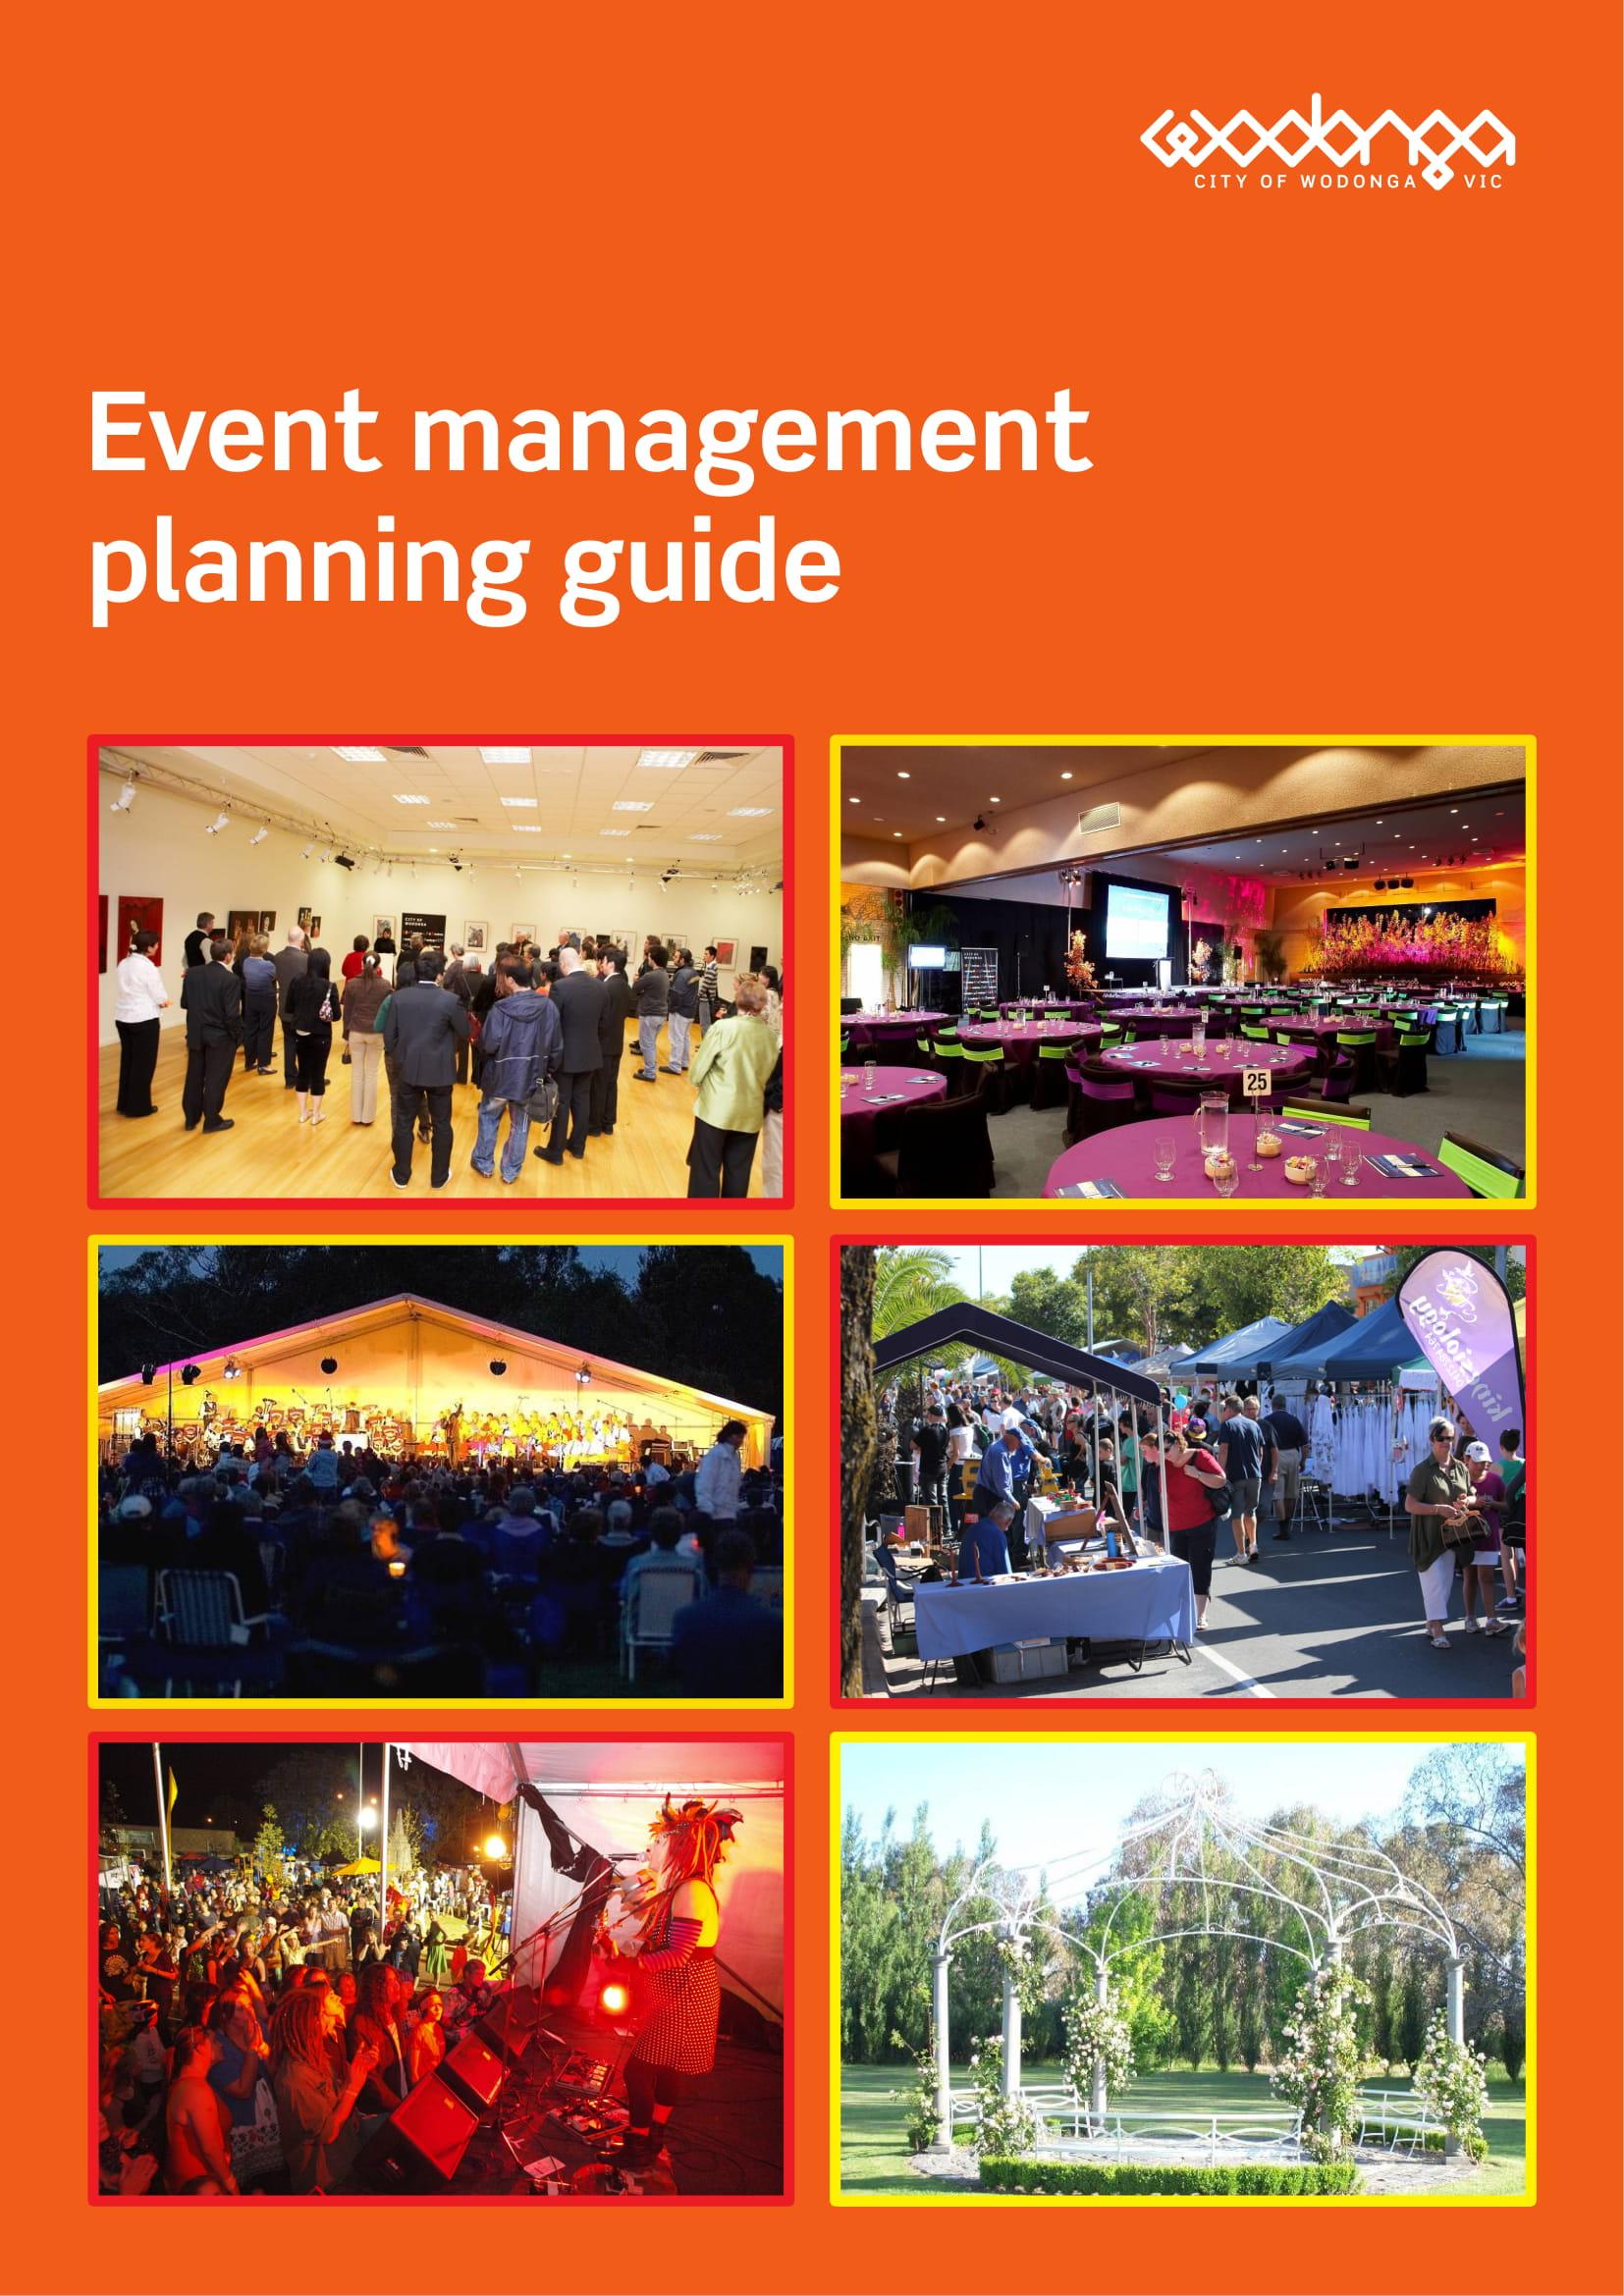 event management planning guide example